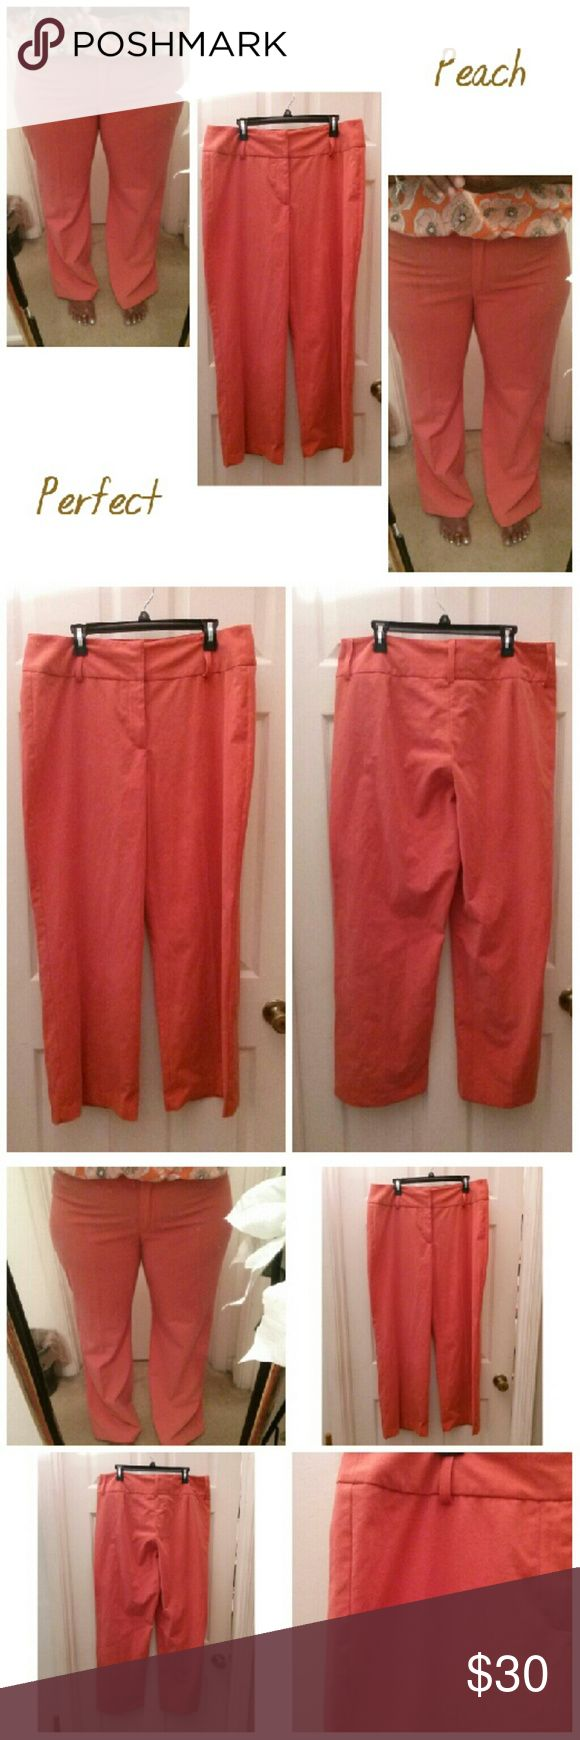 👖💞🍑 Perfect Peach Pants Perfect Peach Pants. Peach Coral colored. Size 16. High Waisted,  Boot Cut.  Polyester,  Rayon, Spandex material. Comes with the cutest belt. Add me to your Bundle with a Great Bundle Discount. D.F.A New York Pants Boot Cut & Flare